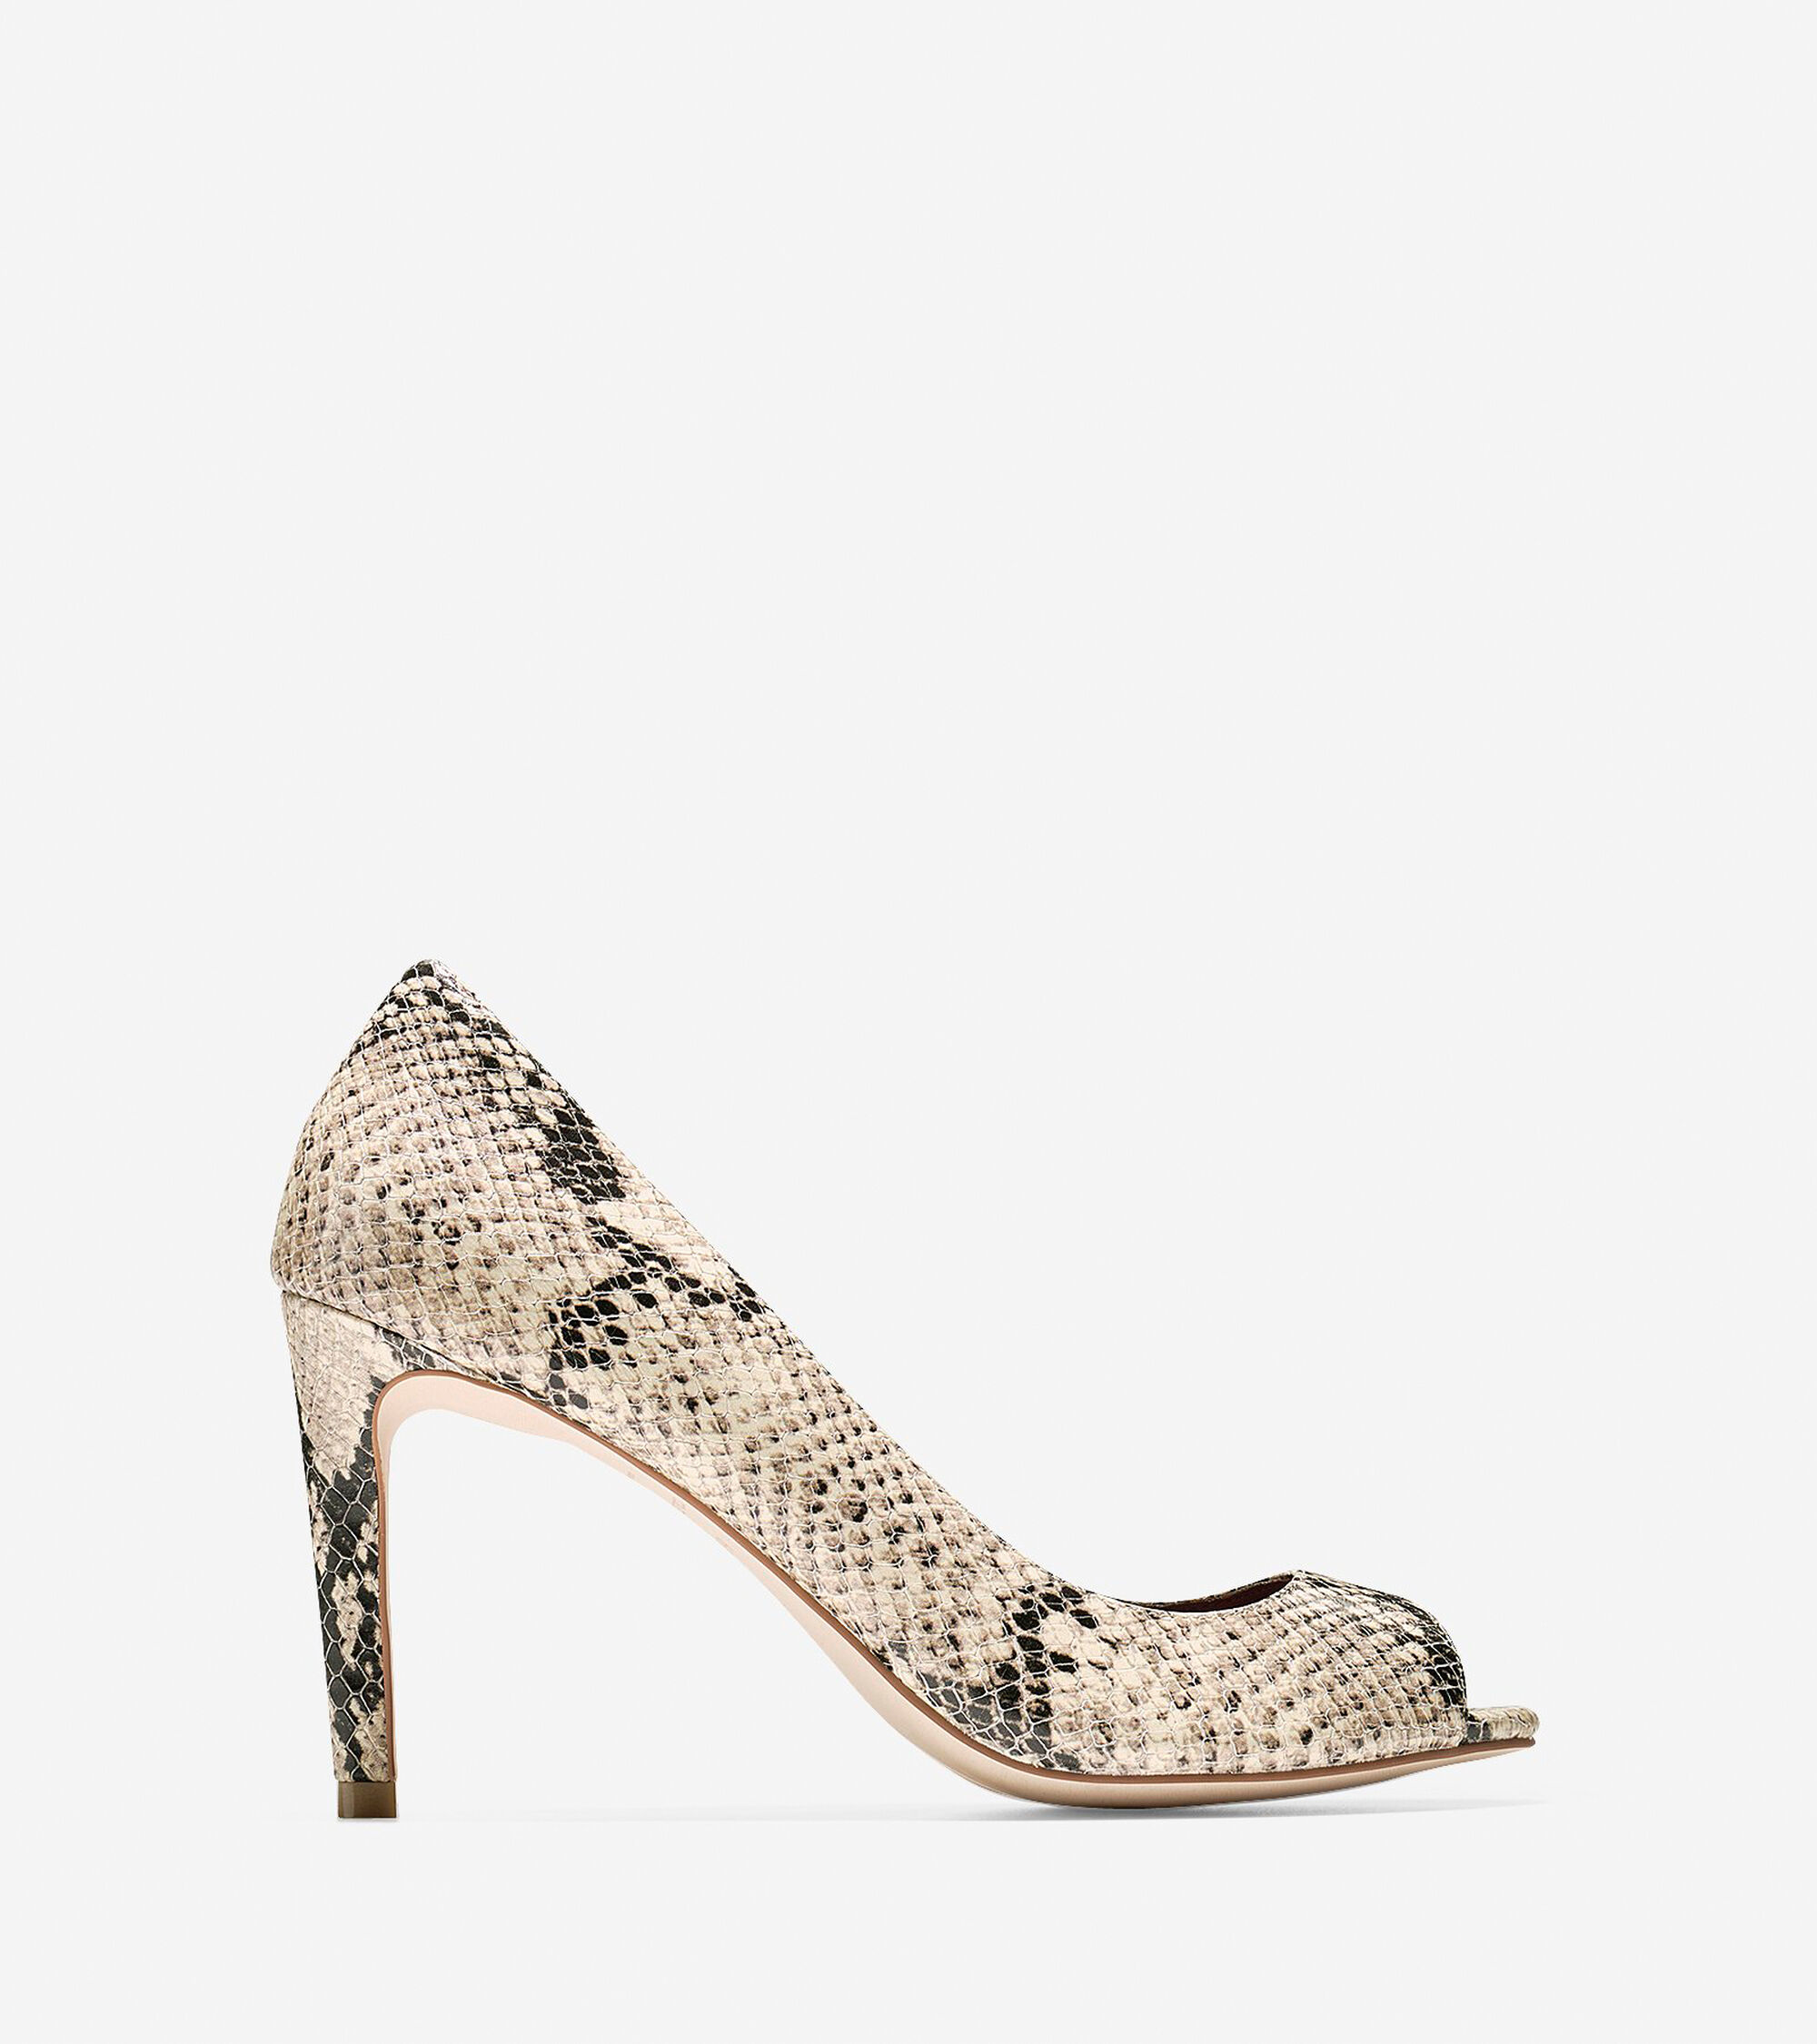 Shoes > Fair Haven Open Toe Pump (85mm)